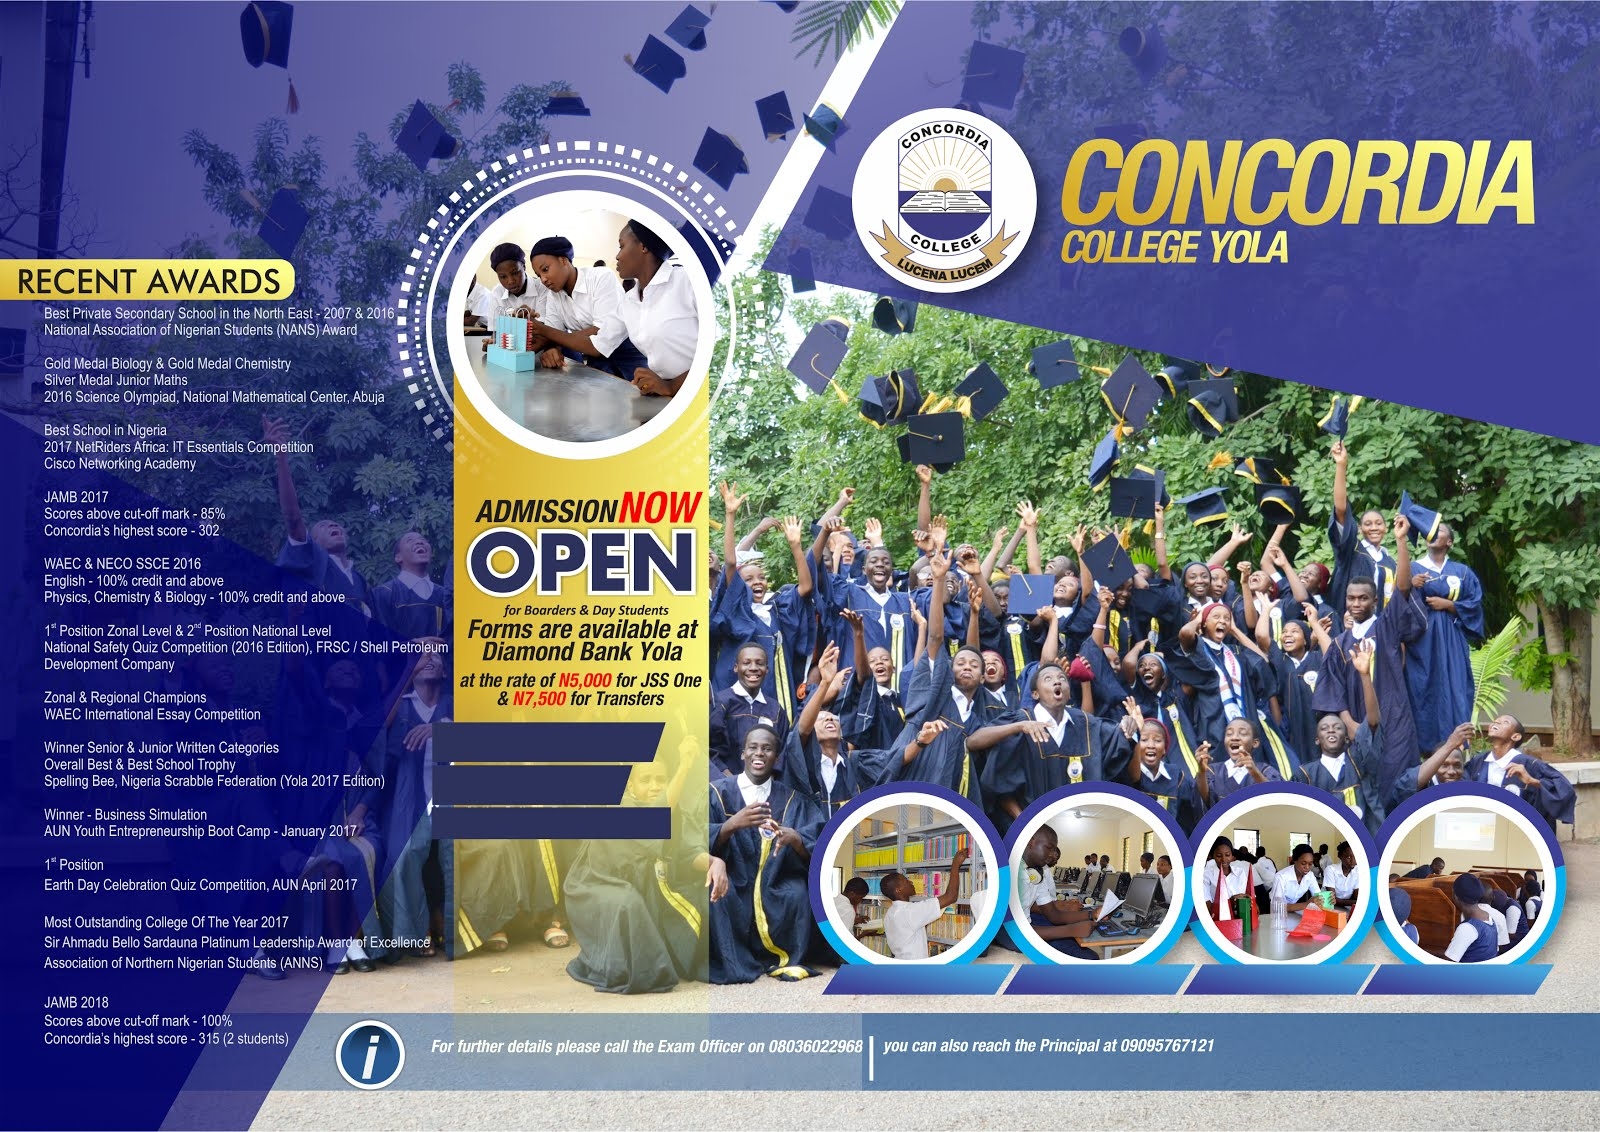 Concordia College JSS1 ADMISSION!